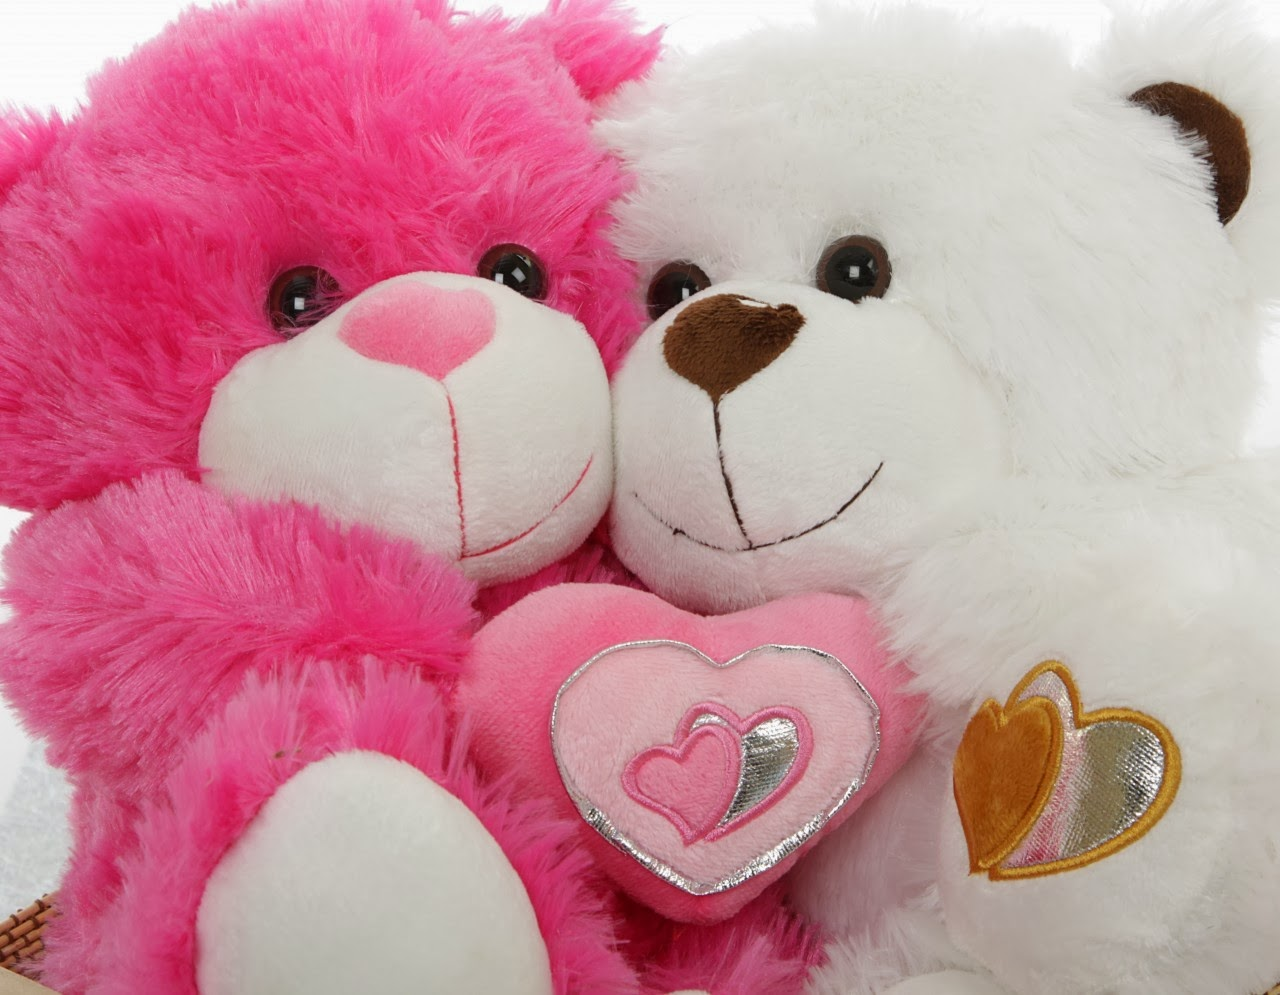 Cute Teddy Bear Pictures HD Images Download desktop Wallpapers 1280x995